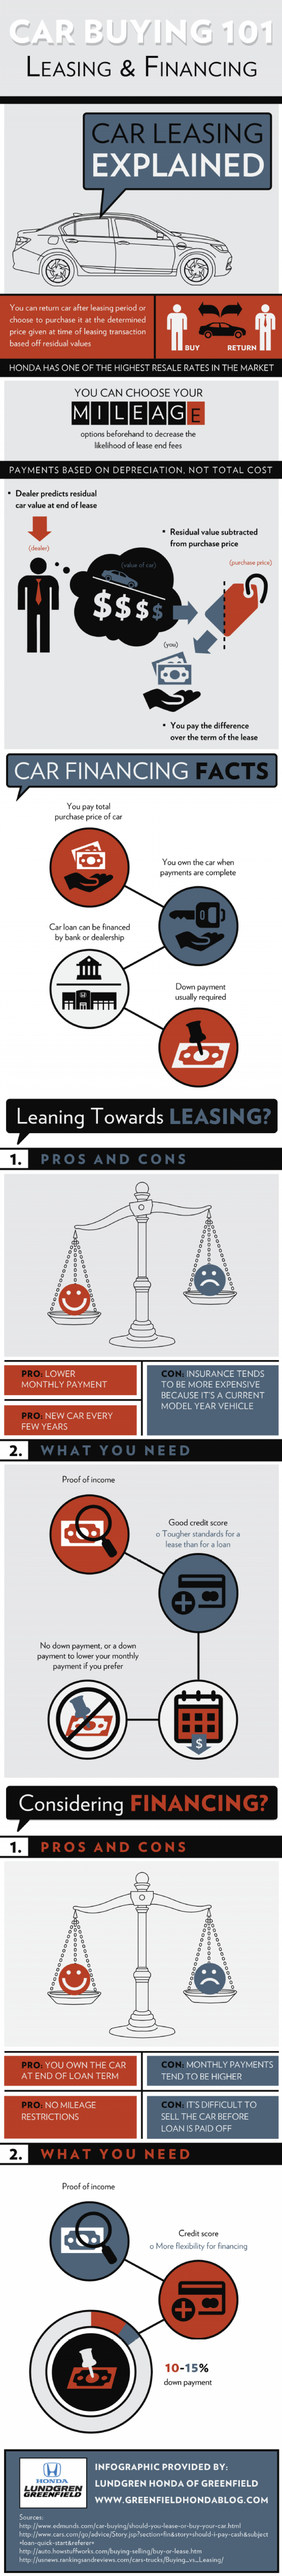 Car Buying 101: Leasing & Financing Infographic